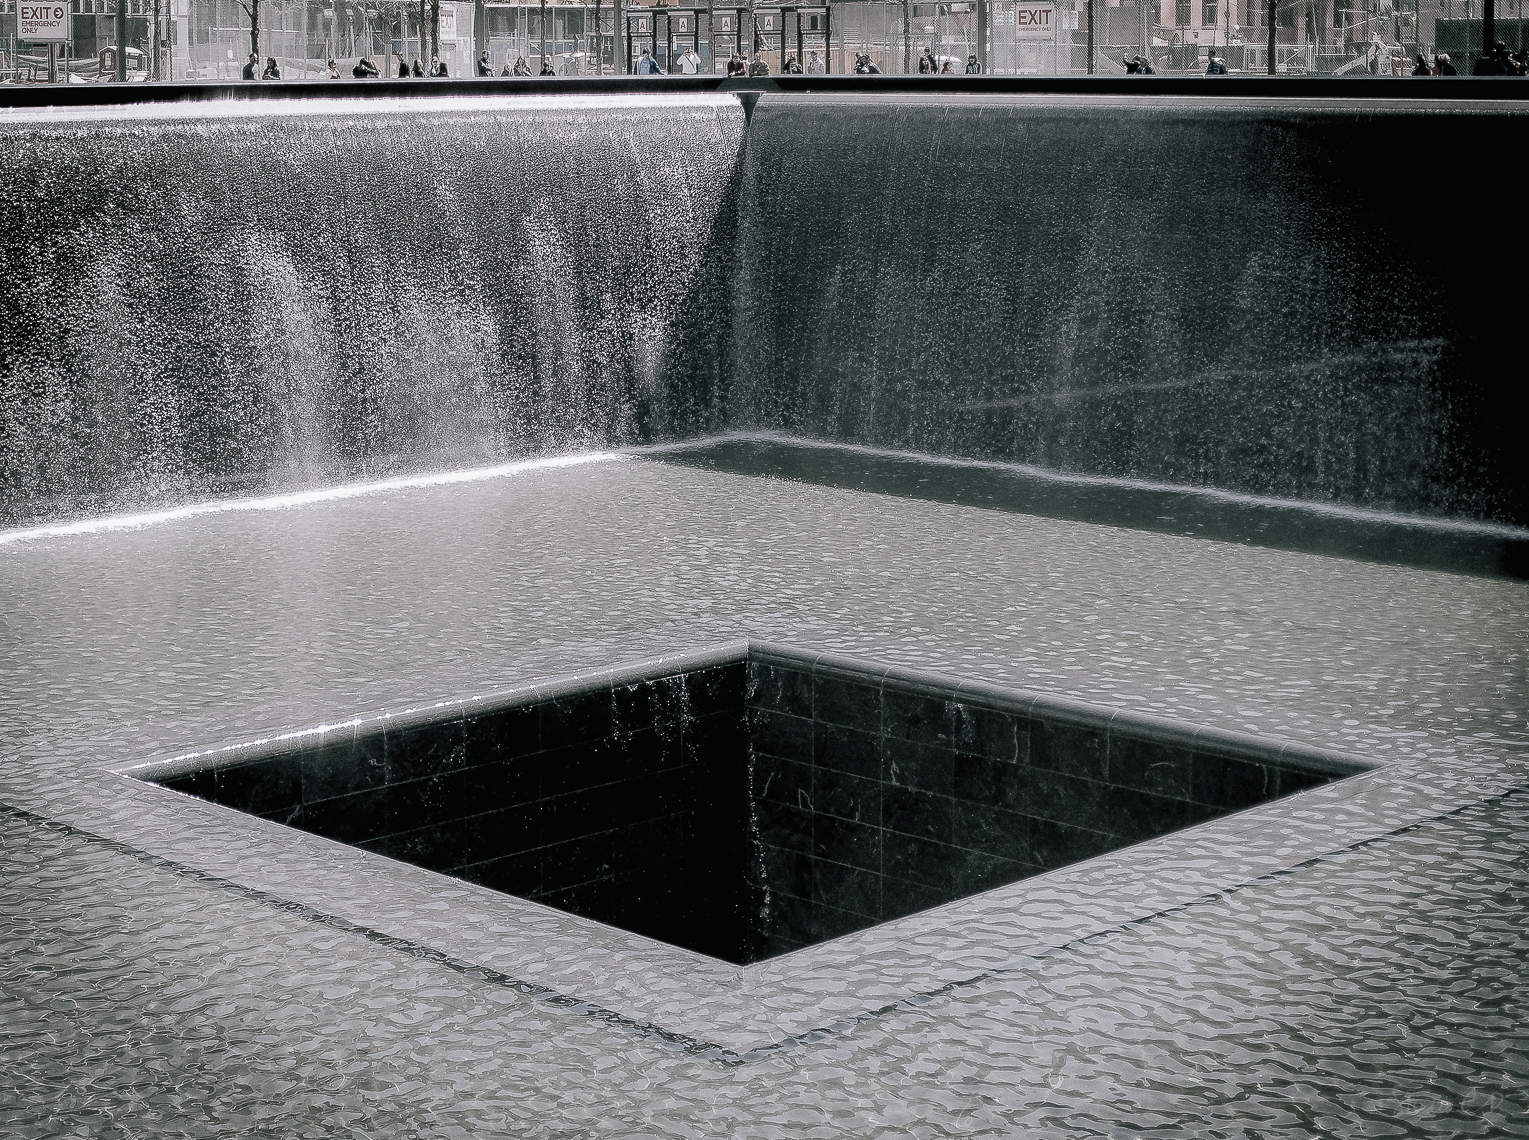 911memorialnyc-travel (1 of 1)